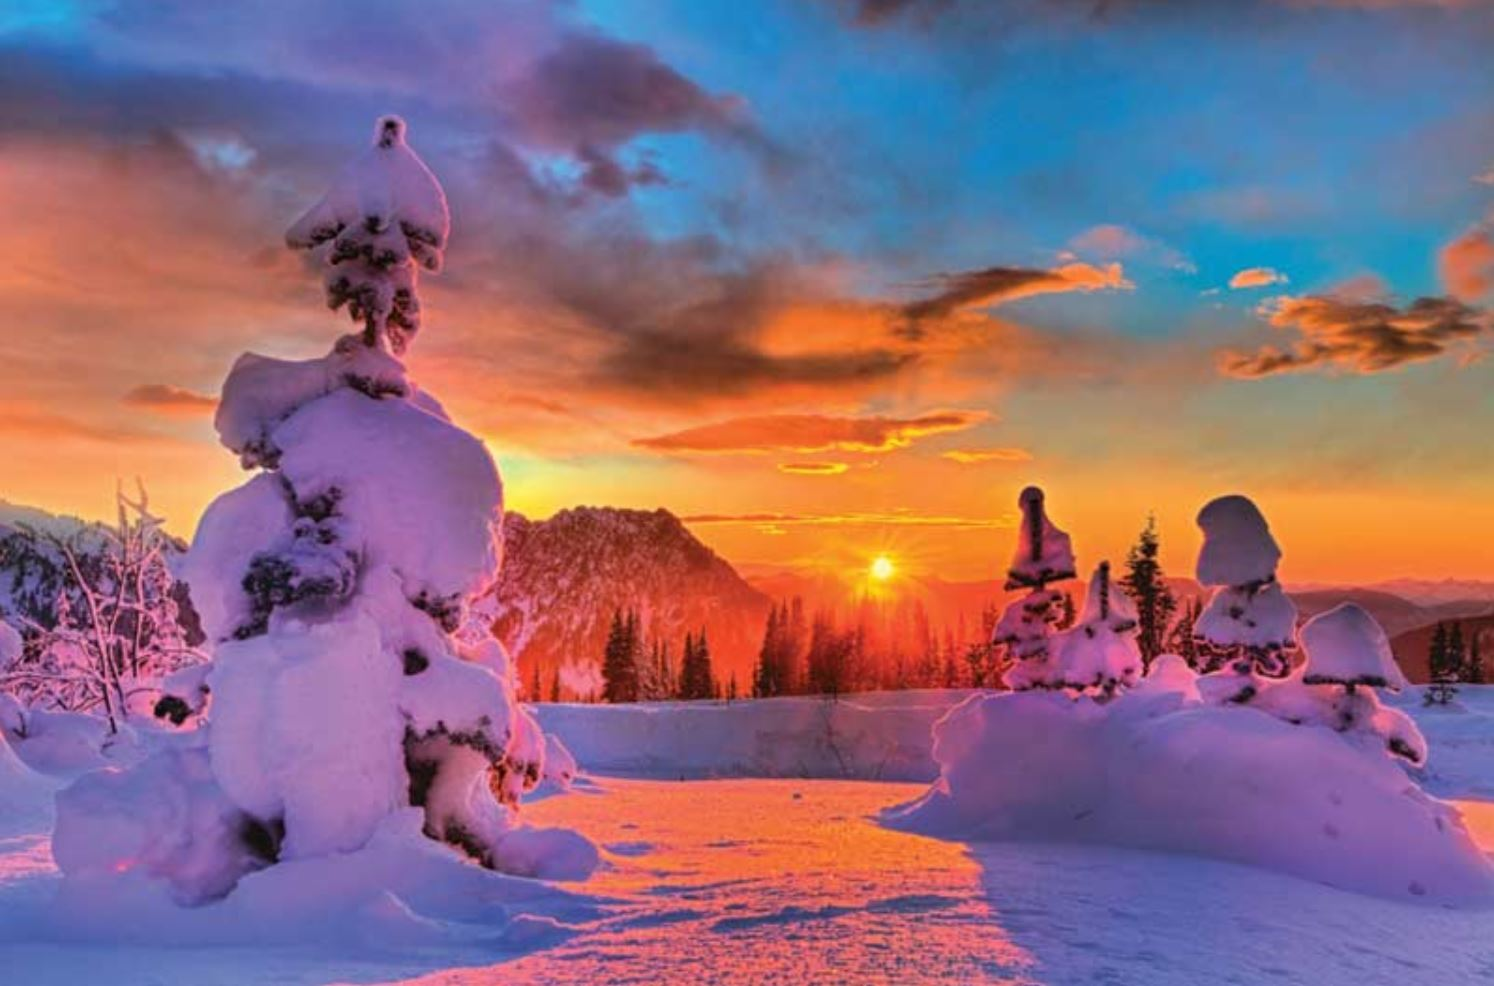 A Fire Sunset On Mount Rainier – Another Reason to Love Northwest Winters